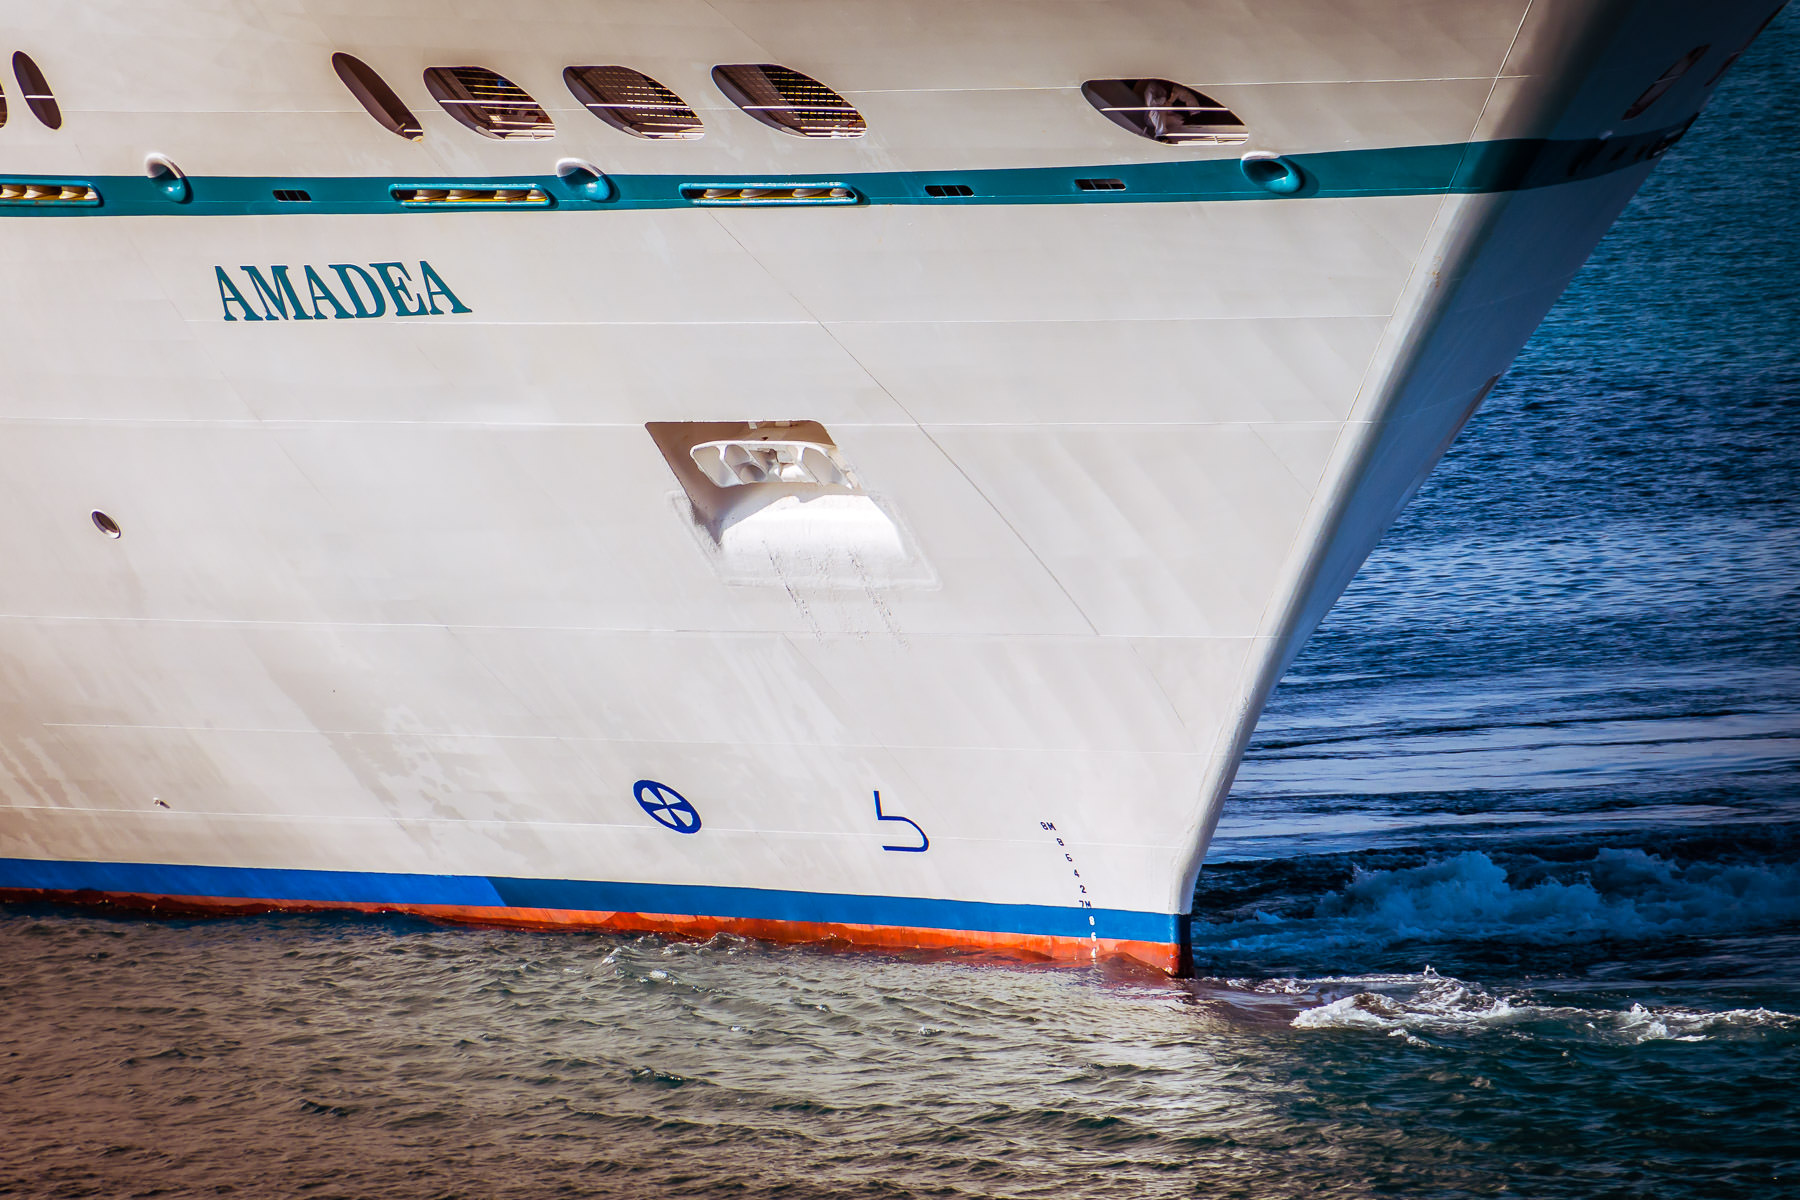 The bow of the cruise ship Amadea cuts through the water as she begins to depart Freeport, Bahamas.